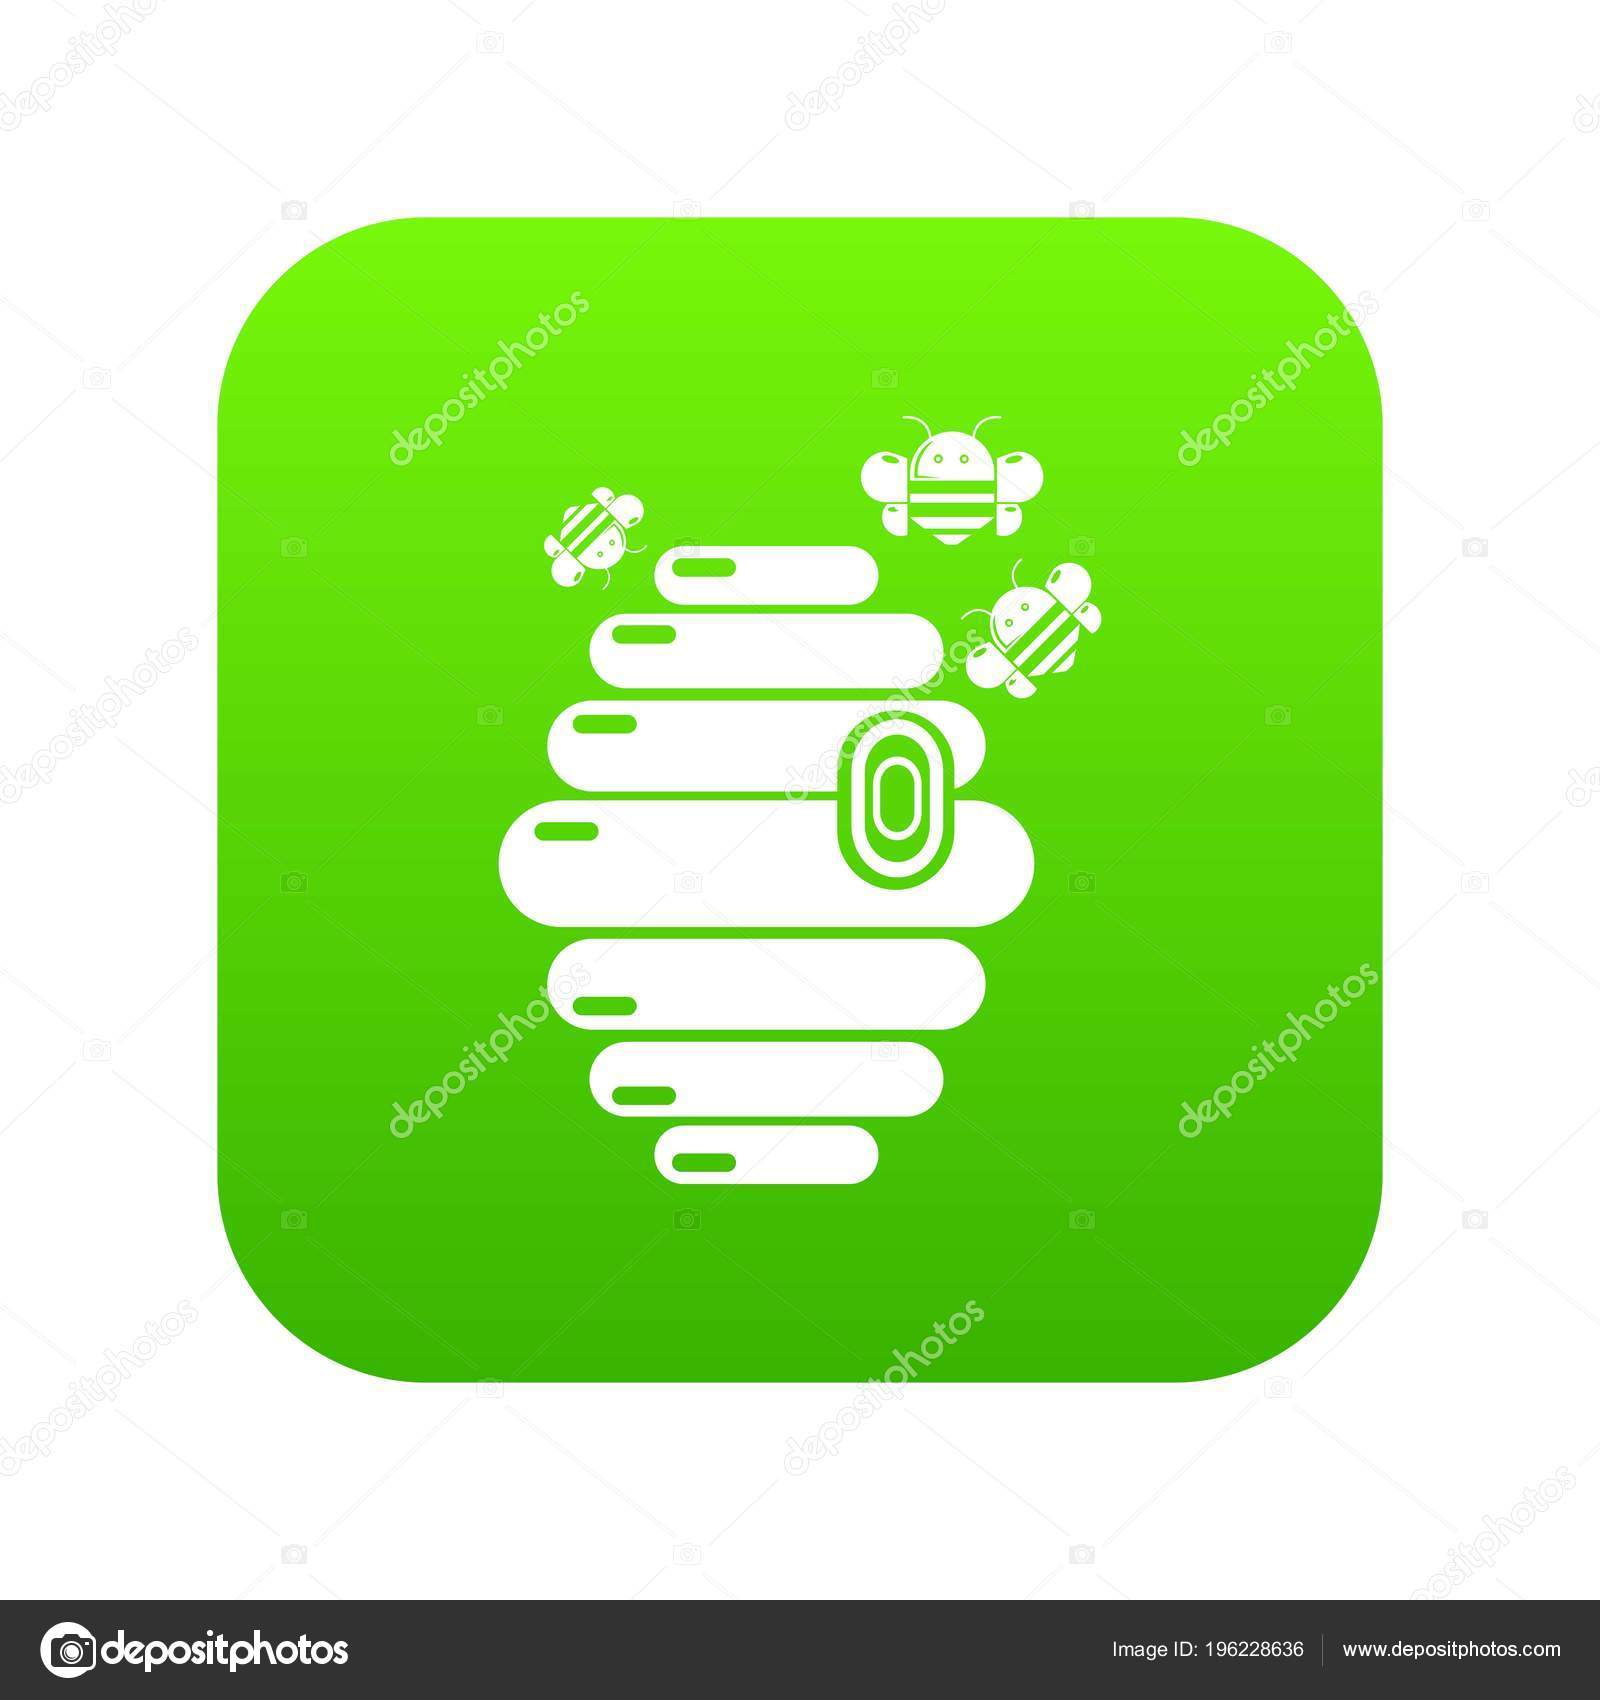 Swarm icon green vector stock vector ylivdesign 196228636 swarm icon green vector stock vector publicscrutiny Images